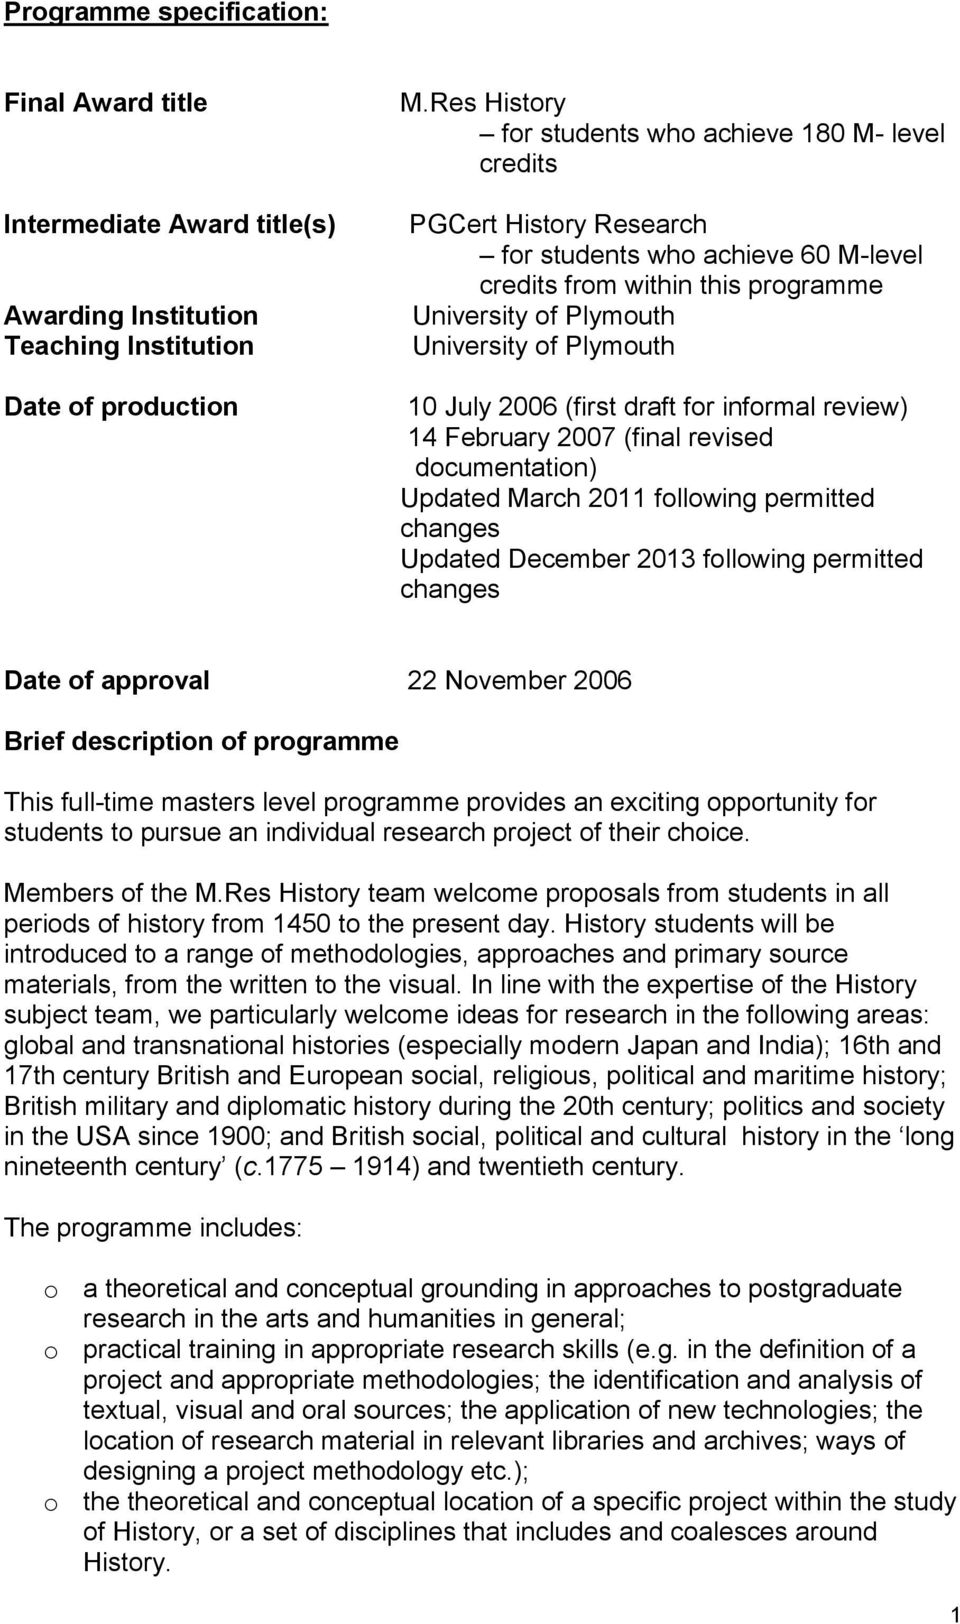 10 July 2006 (first draft for informal review) 14 February 2007 (final revised documentation) Updated March 2011 following permitted changes Updated December 2013 following permitted changes Date of